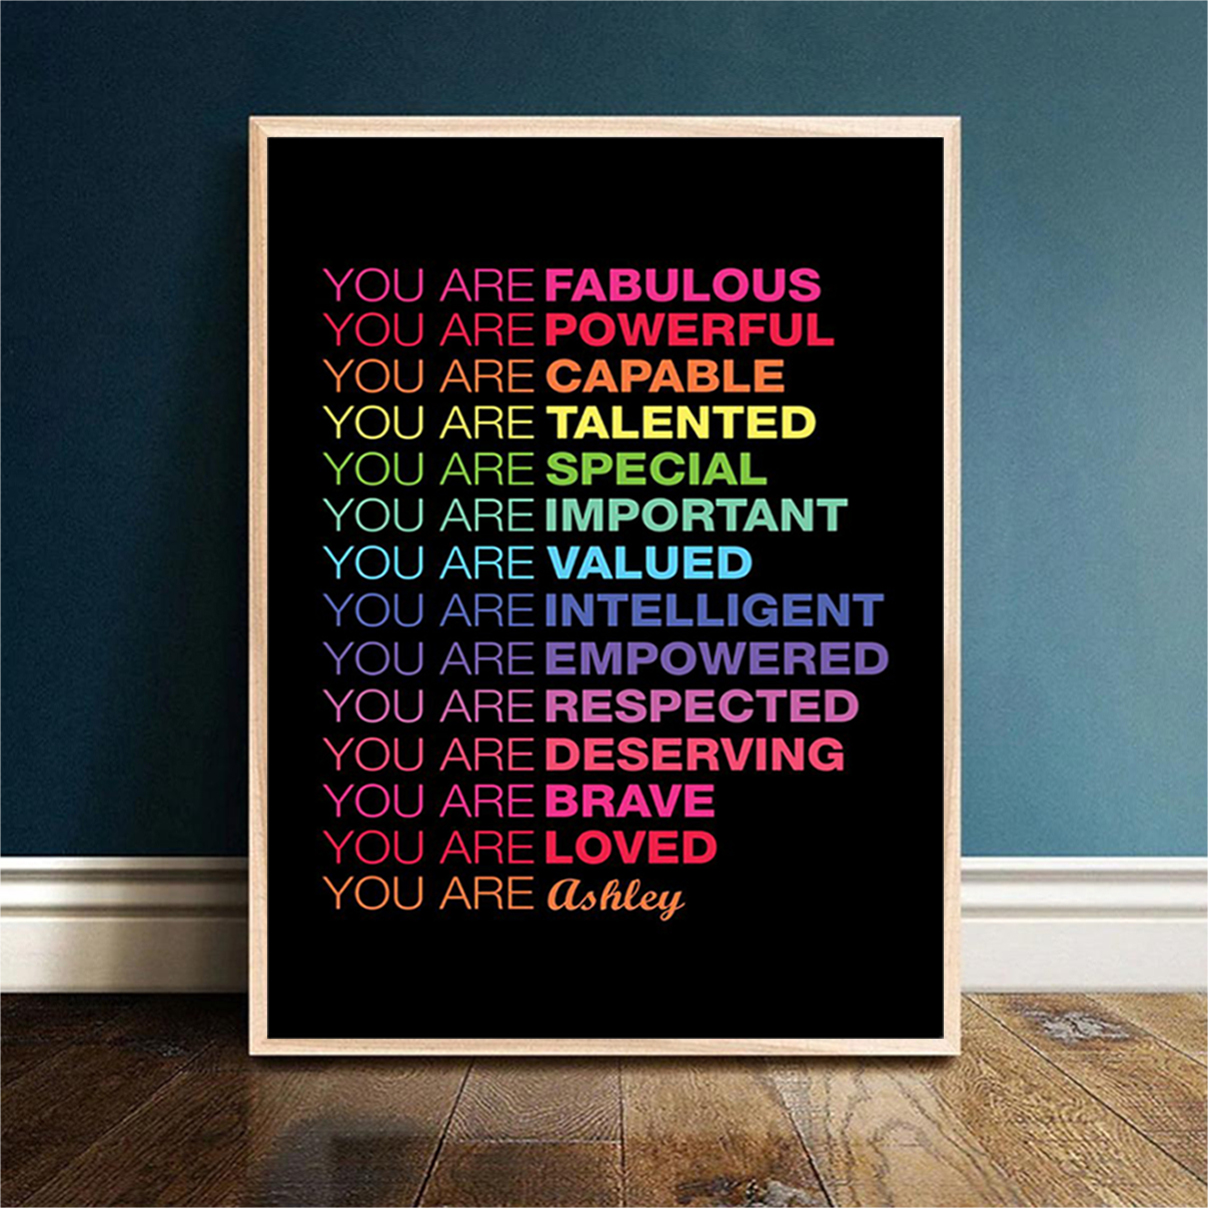 Personalized custom name You are fabulous you are powerful poster A2